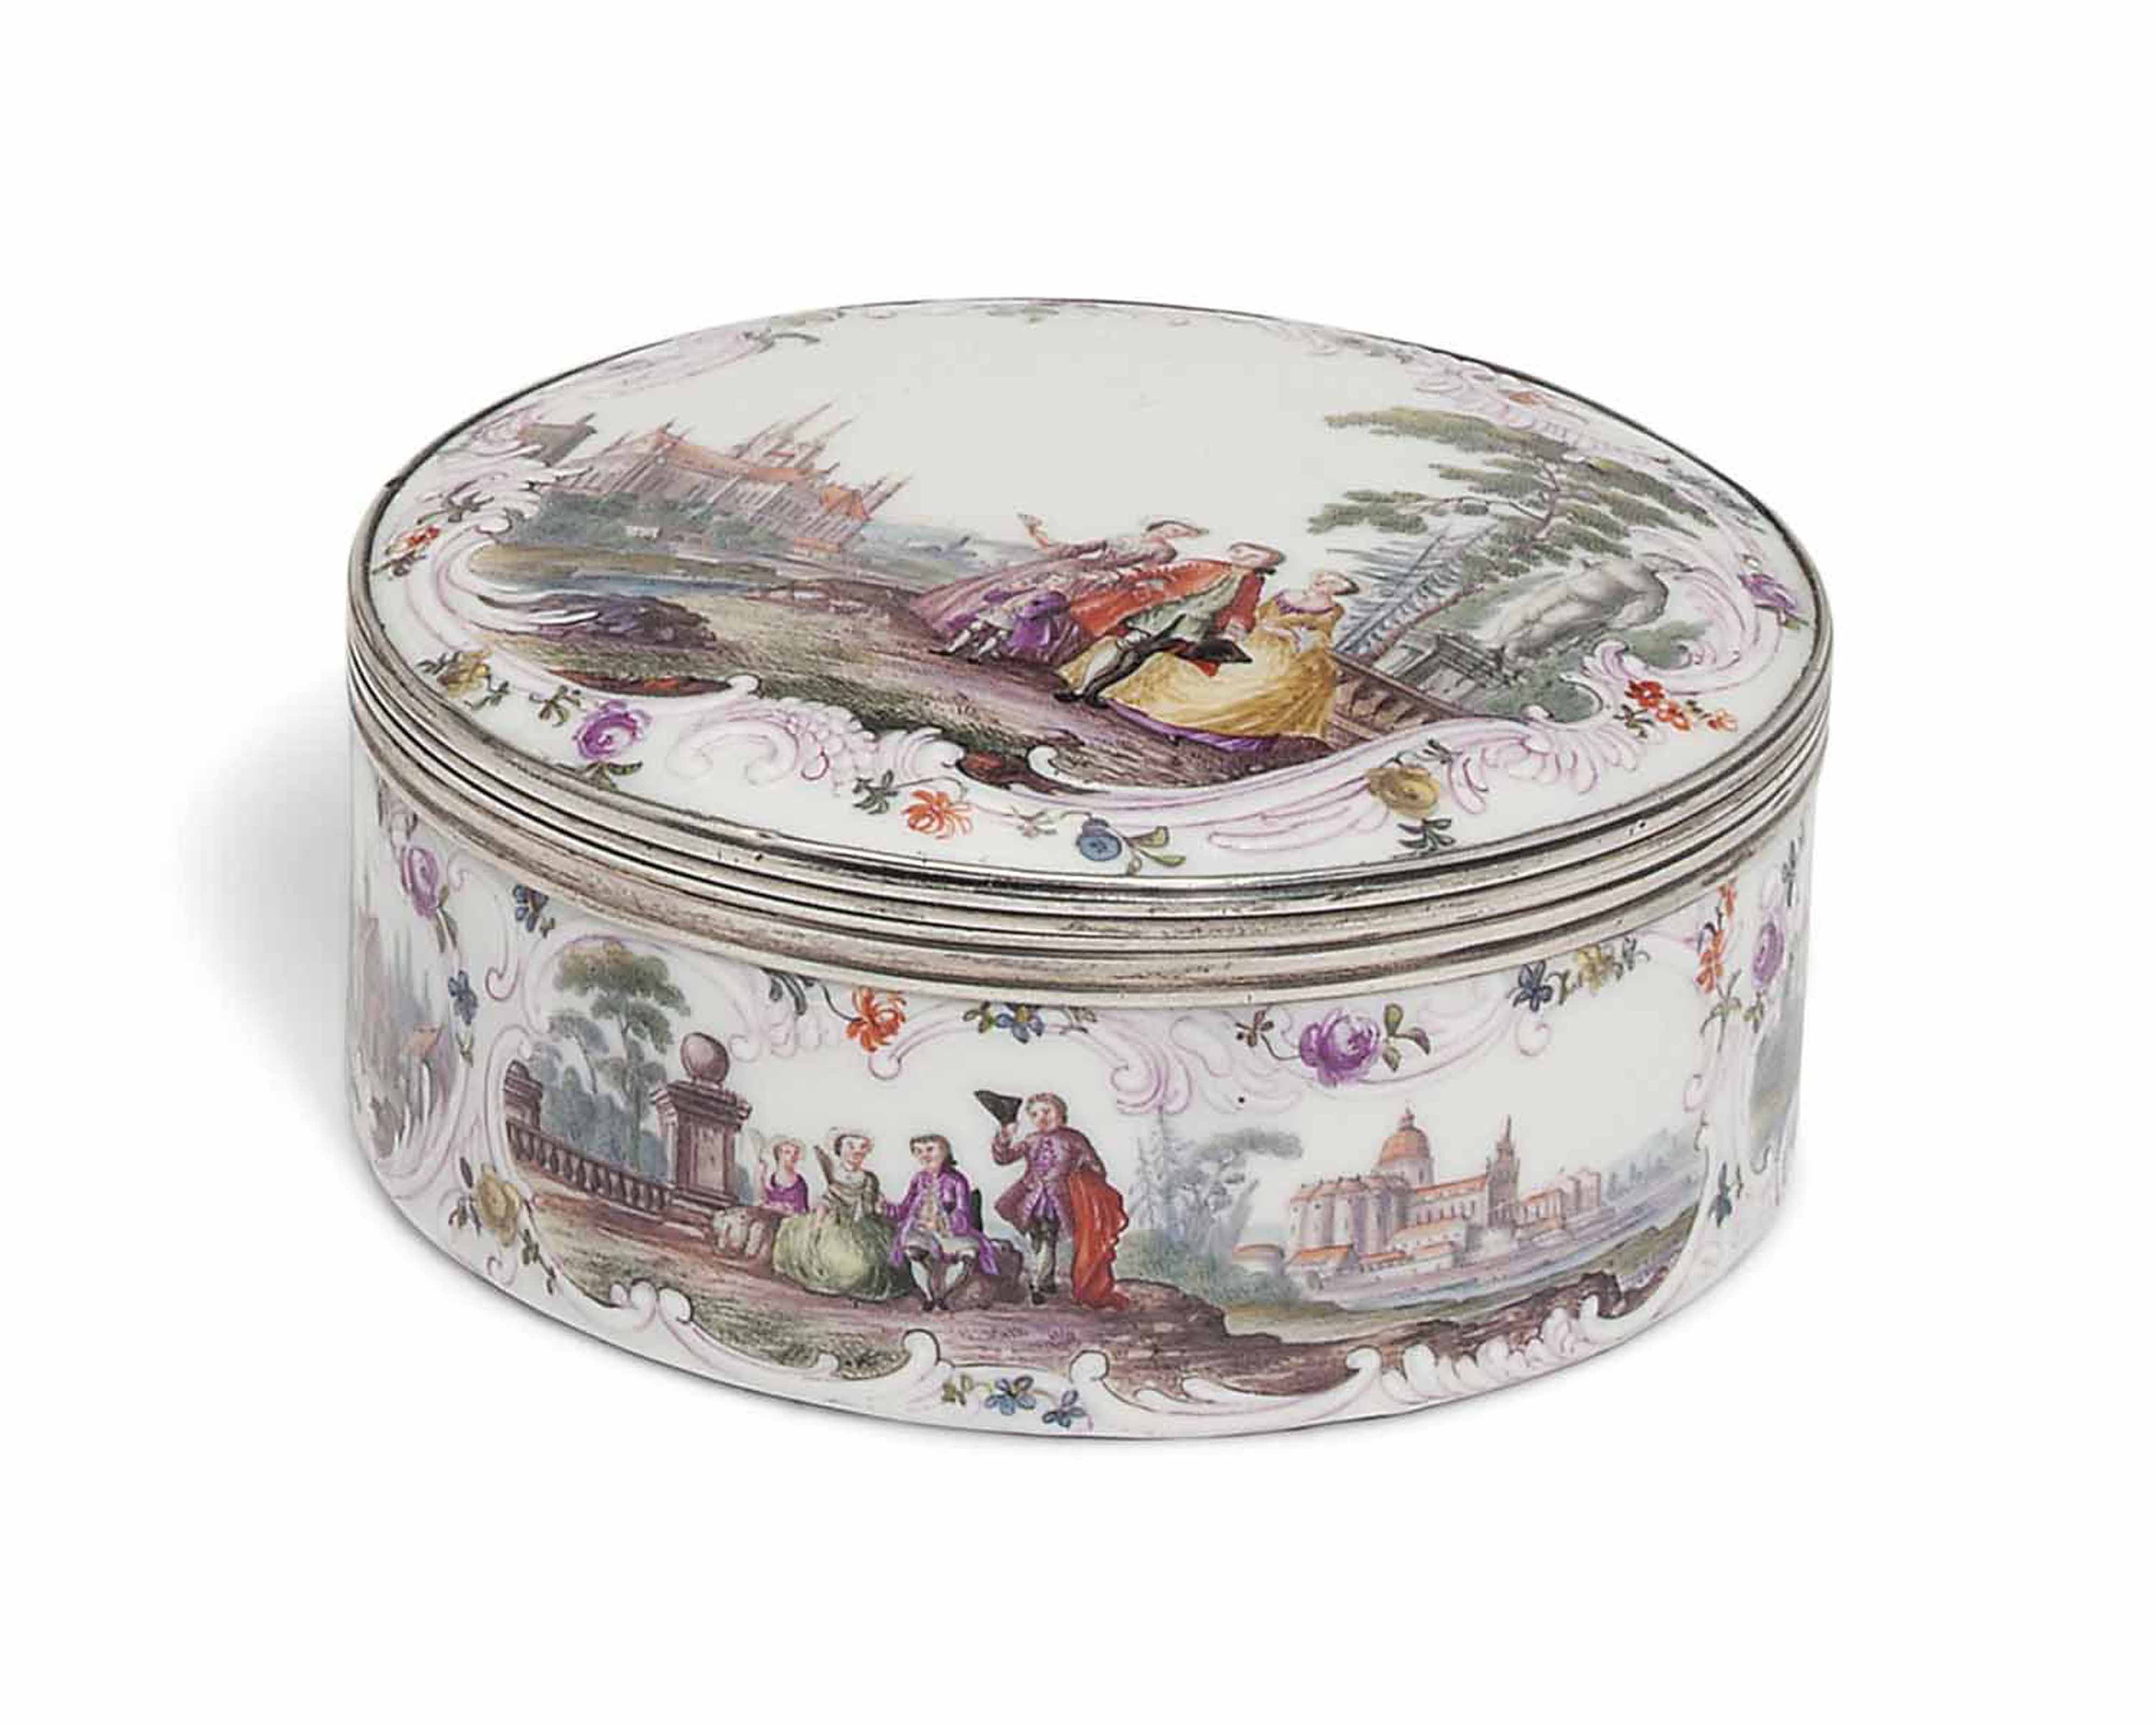 A MEISSEN SILVER-MOUNTED CIRCULAR SNUFF-BOX AND COVER